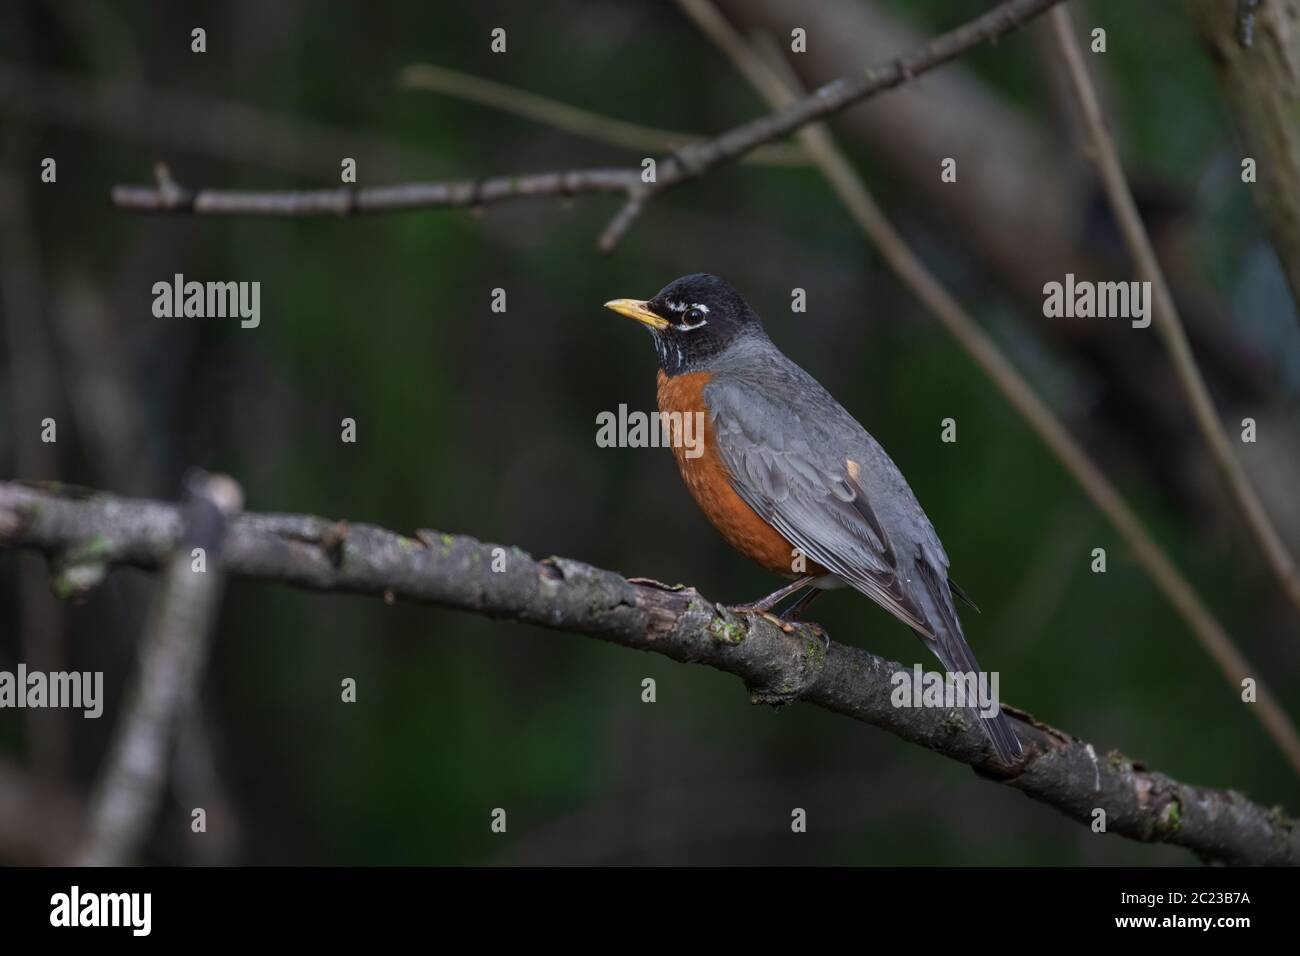 An American robin perched on a branch. The American robin is the state bird of Michigan. Stock Photo